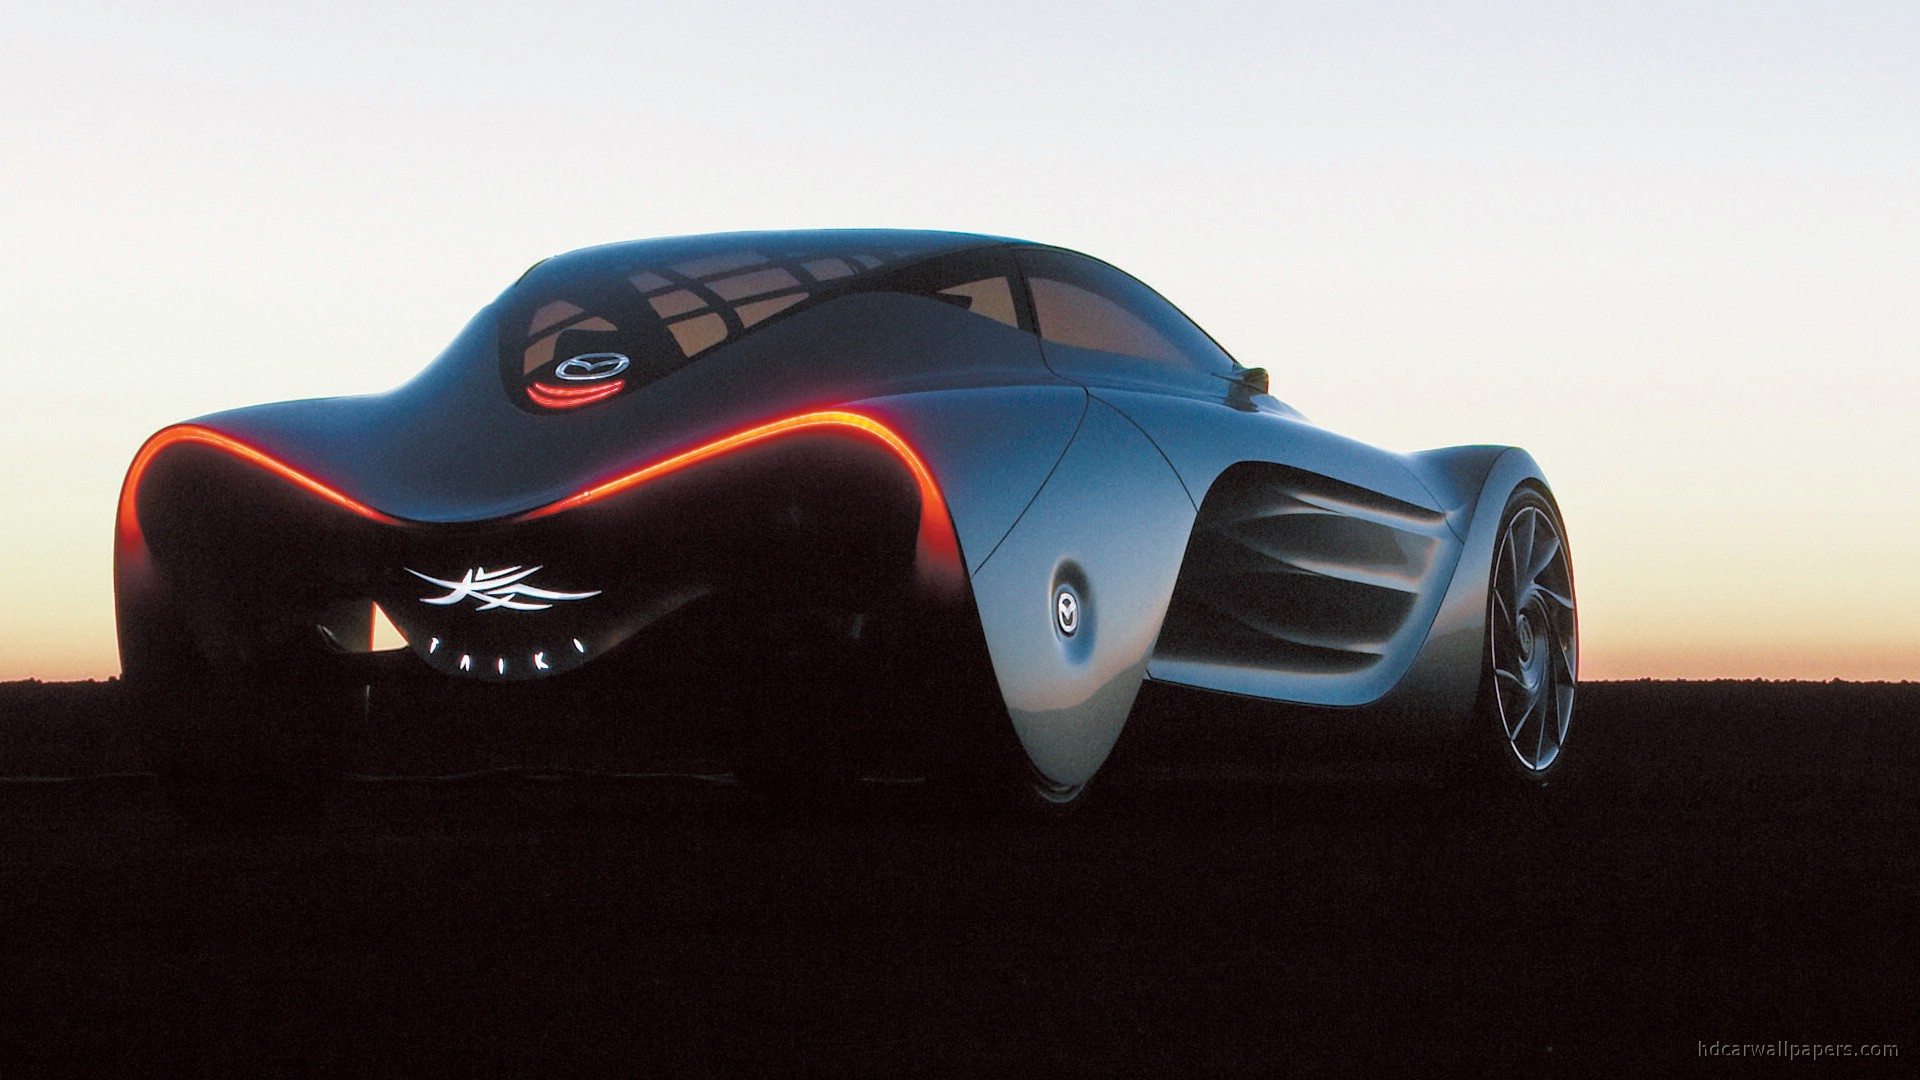 Hd Wallpapers 1080p Mazda Taiki Concept Hd 1080p Wallpaper Hd